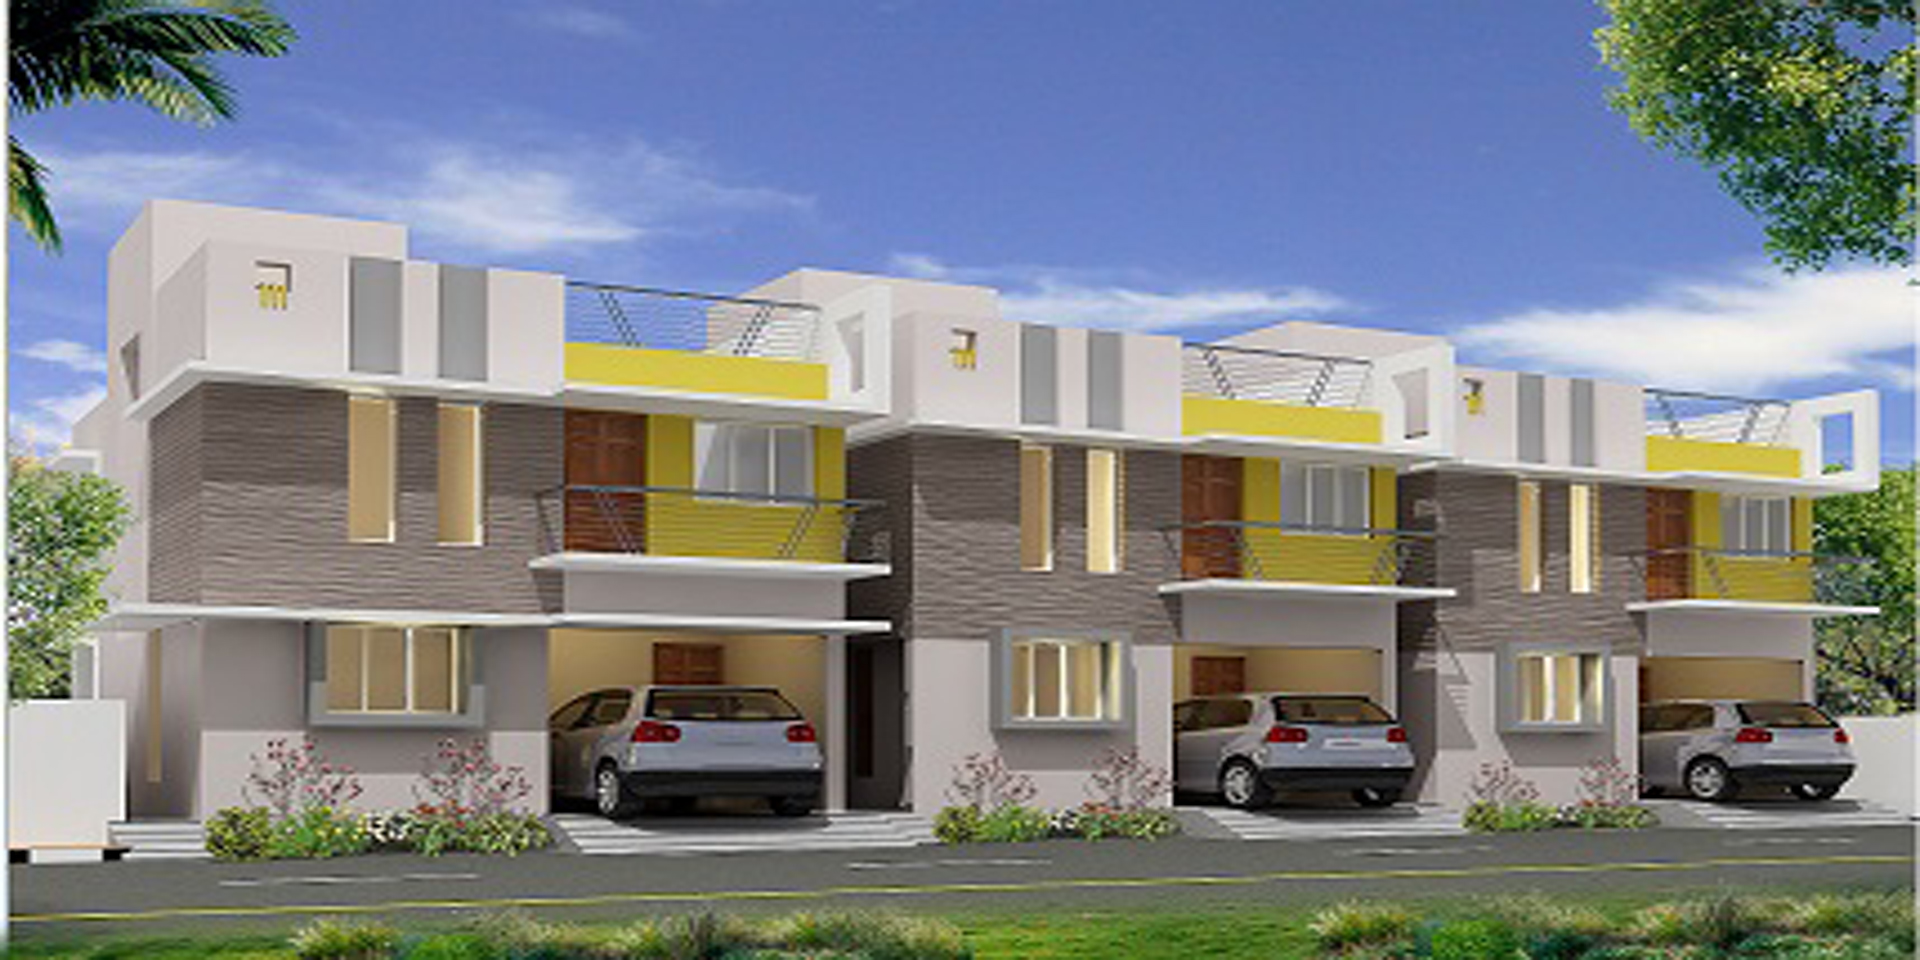 Flats for sale in Daffodil Villas Kelambakkam